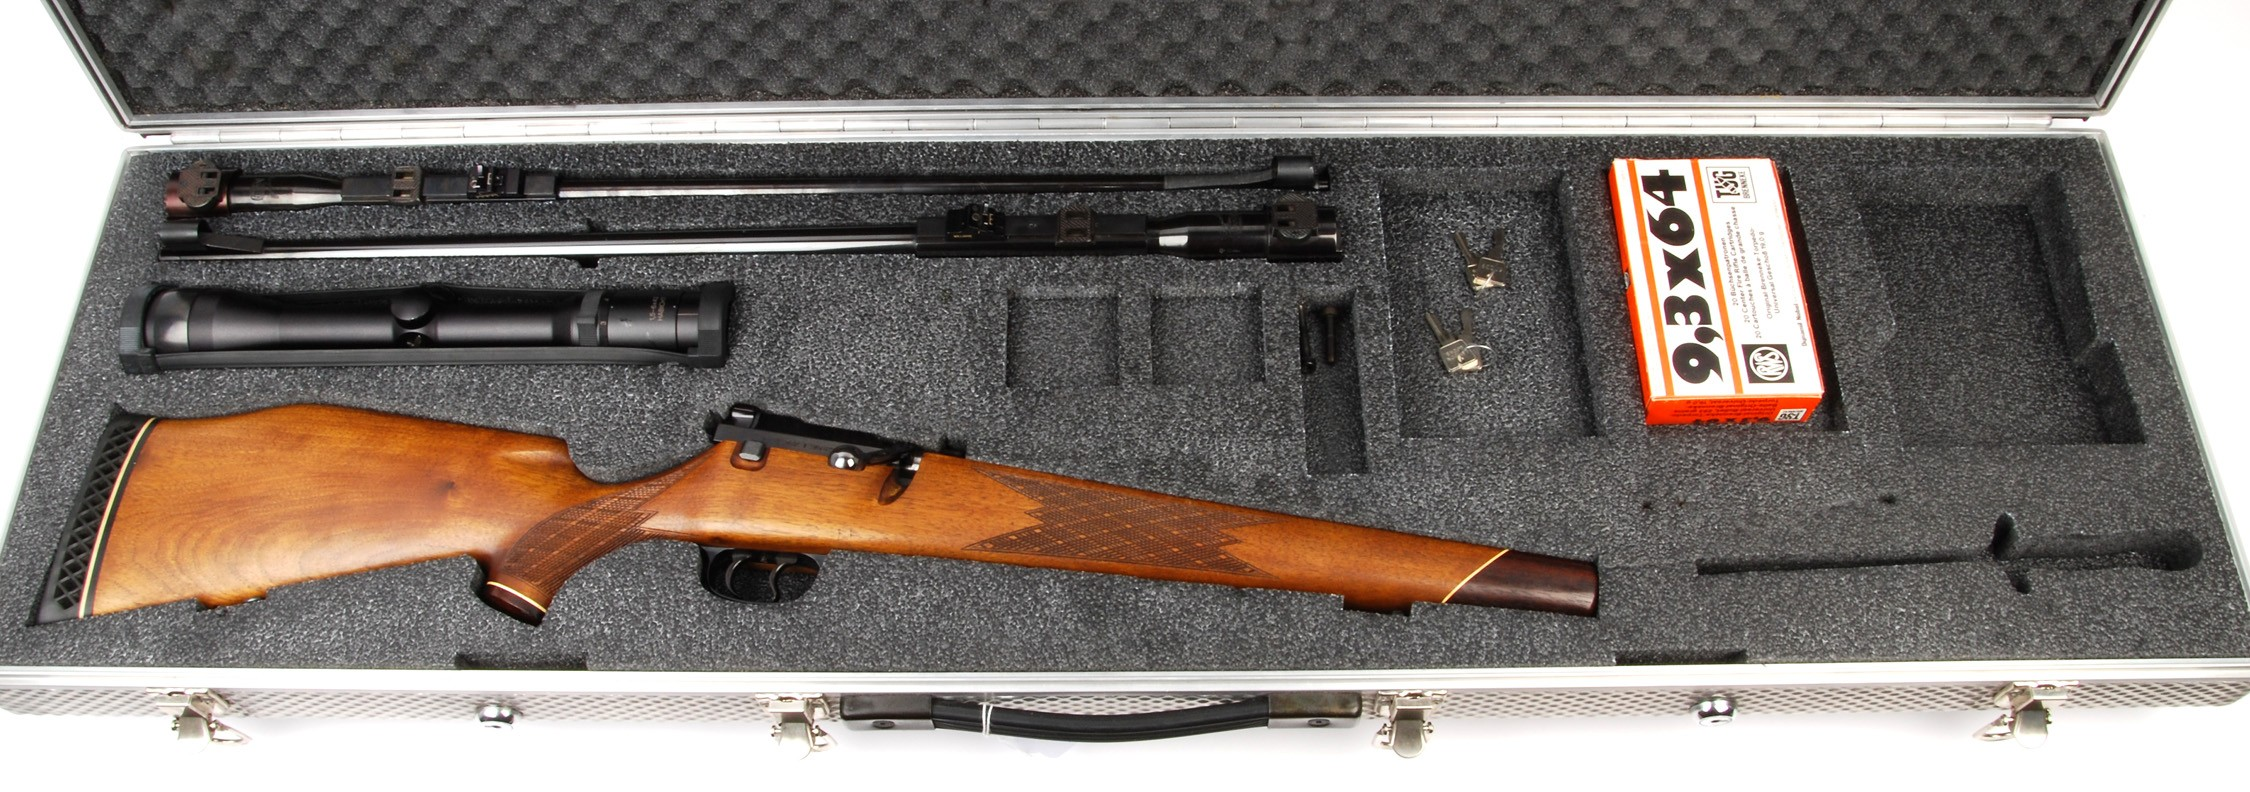 A Mauser 66 taken down with two barrels showing the components of the system. (Picture courtesy of waffenboerse.ch)